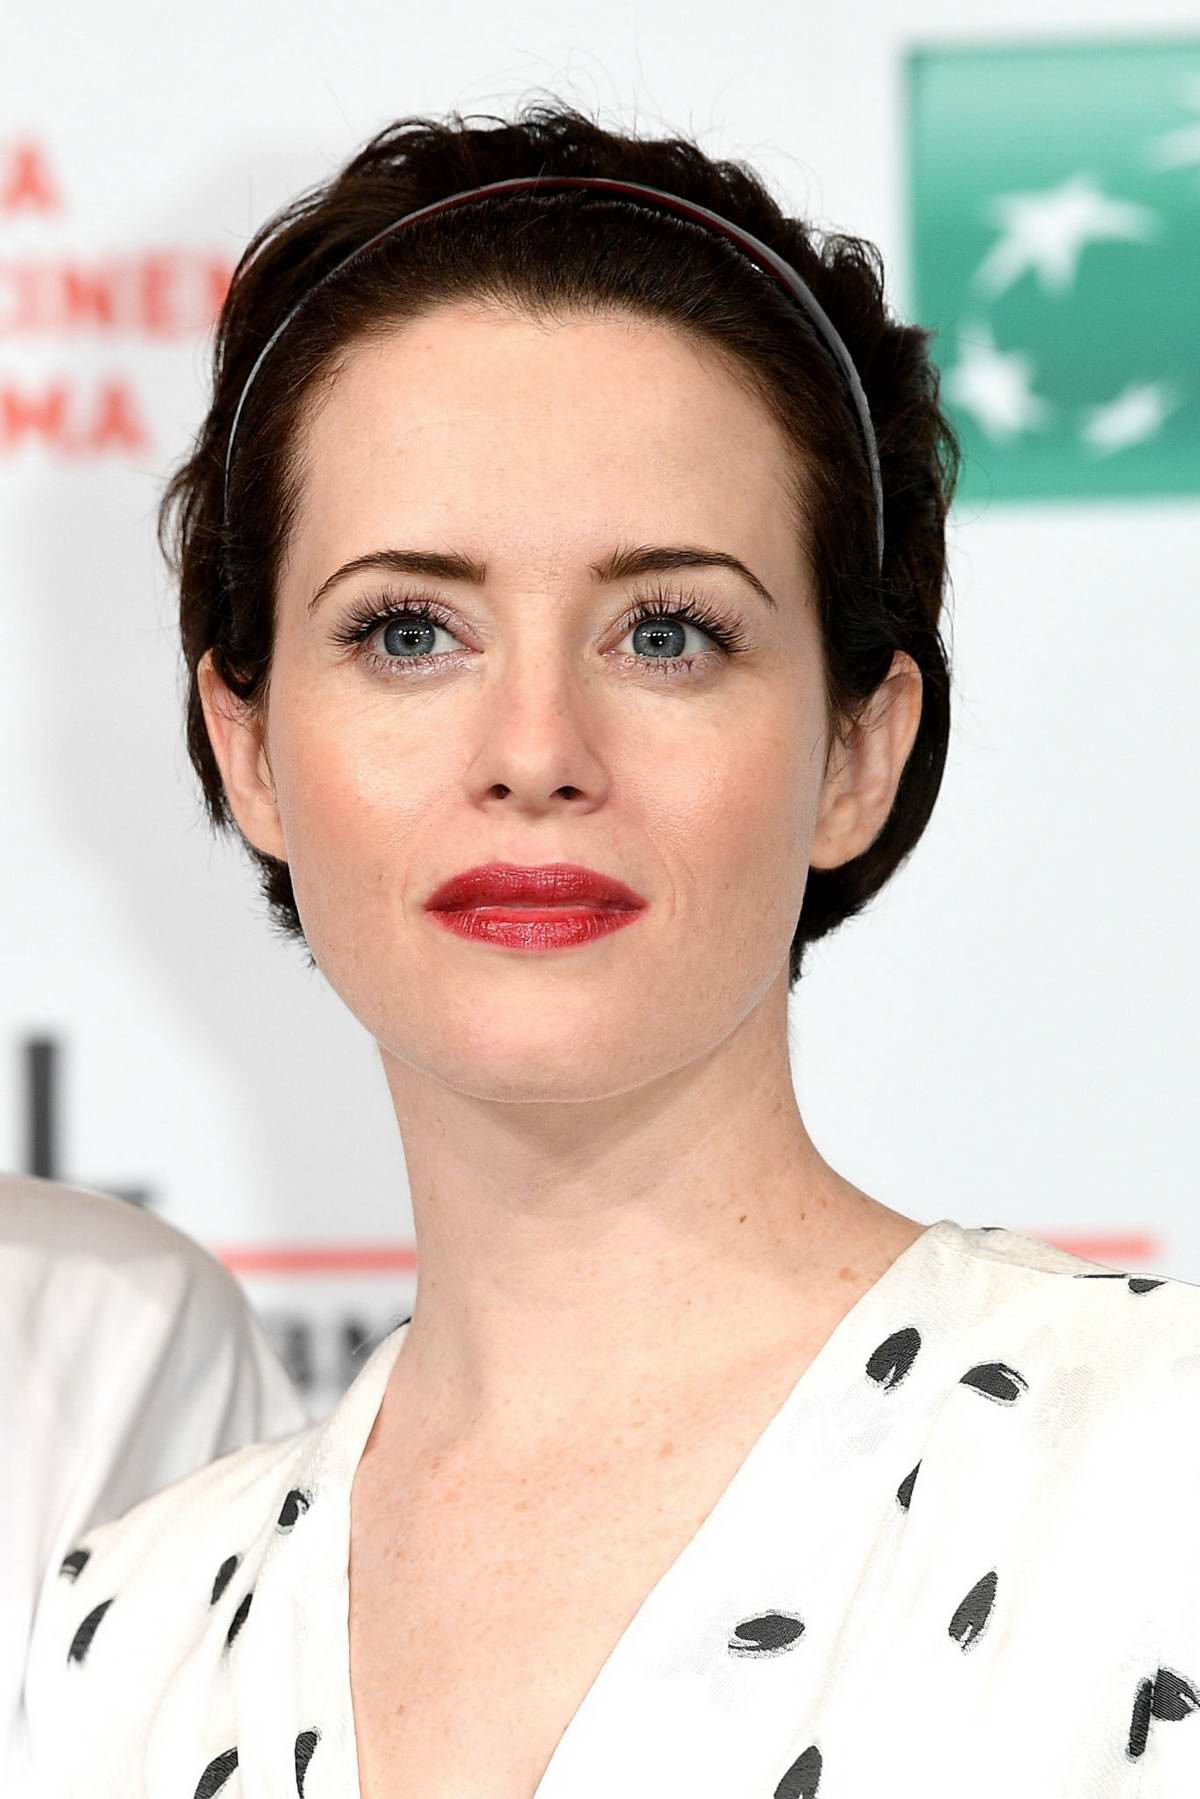 Claire Foy attends 'The Girl In The Spider's Web' photocall during the 13th Rome Film Fest at Auditorium Parco Della Musica in Rome, Italy